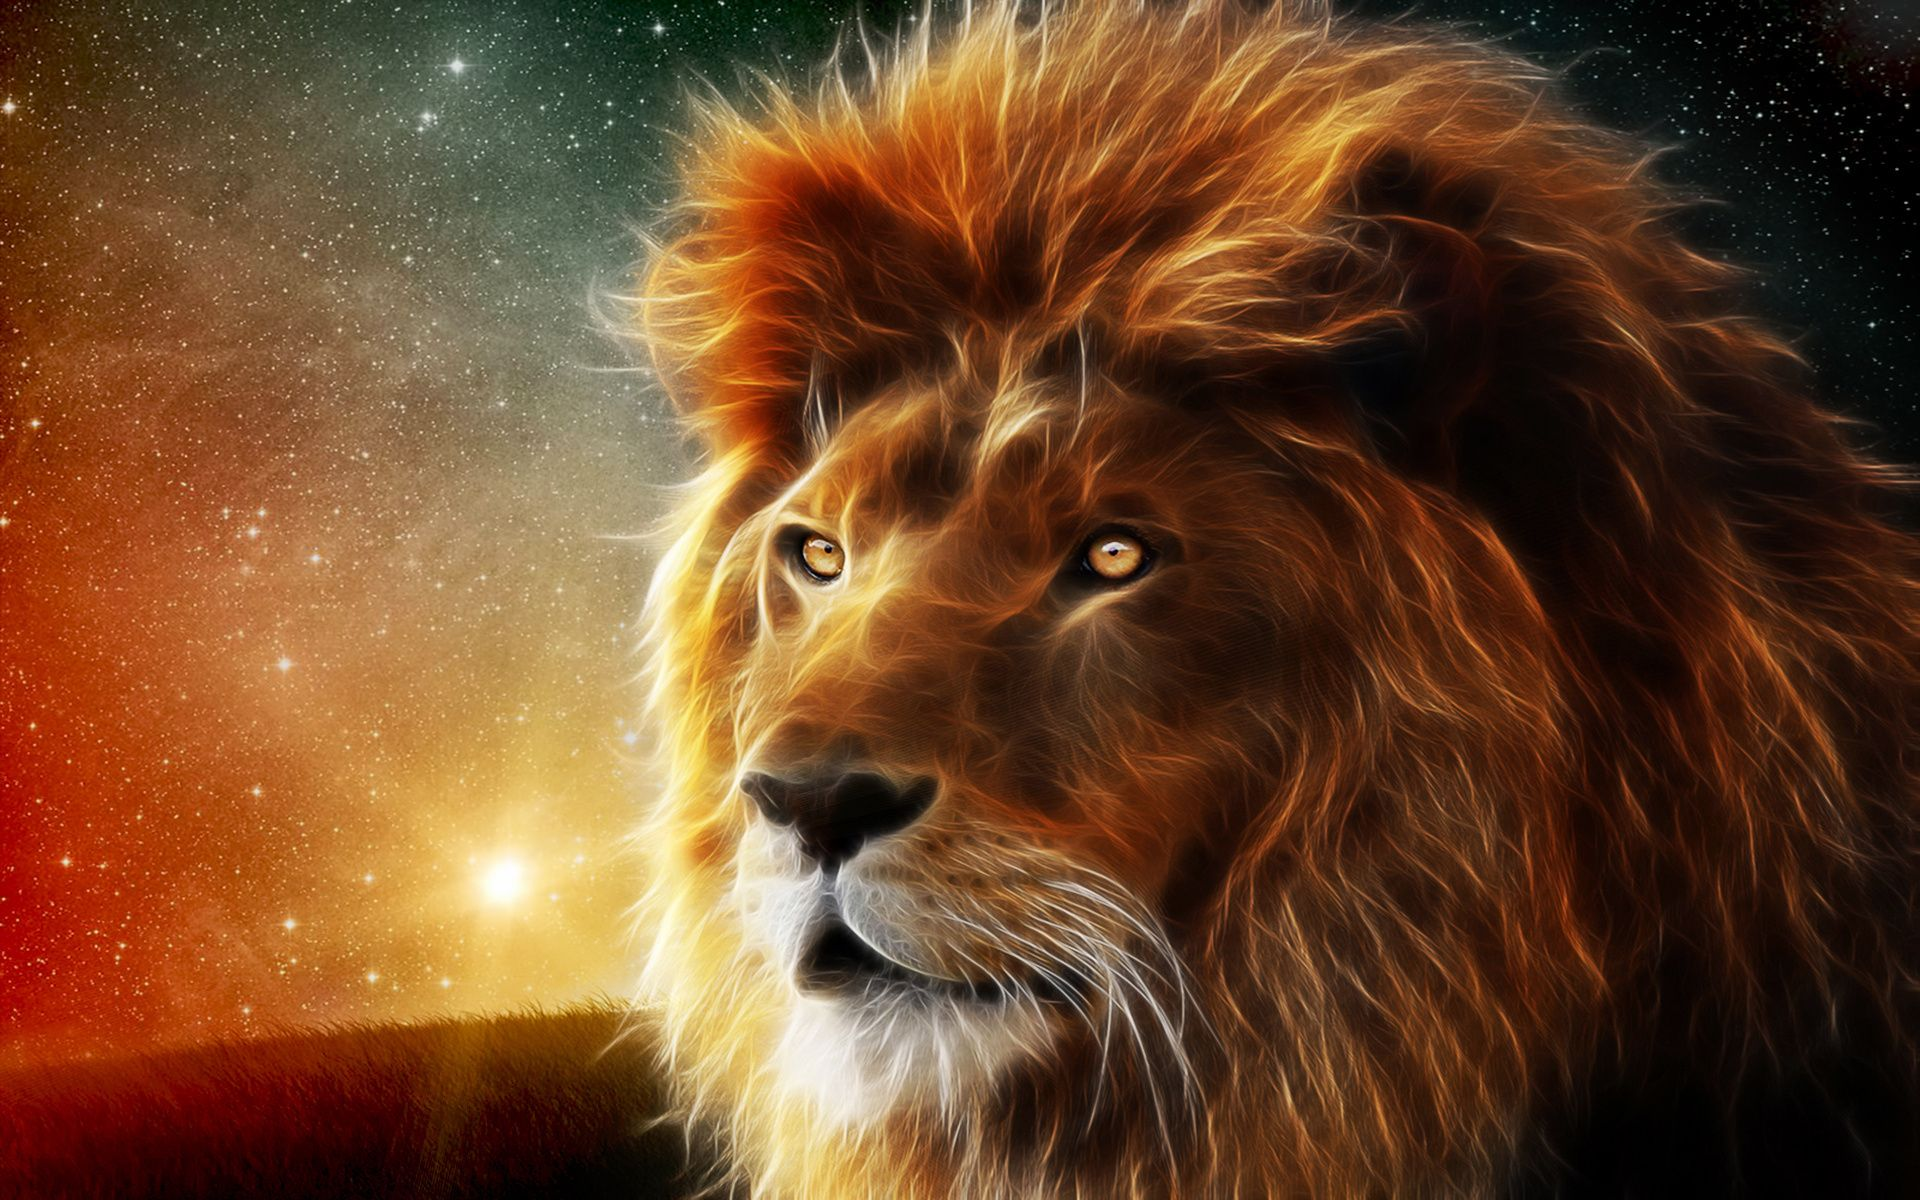 Animals Lion Abstract Fractal Sci Fi Space Nebula Stars Wallpaper 1920x1200 24134 Lion Pictures Lion Wallpaper Your Spirit Animal